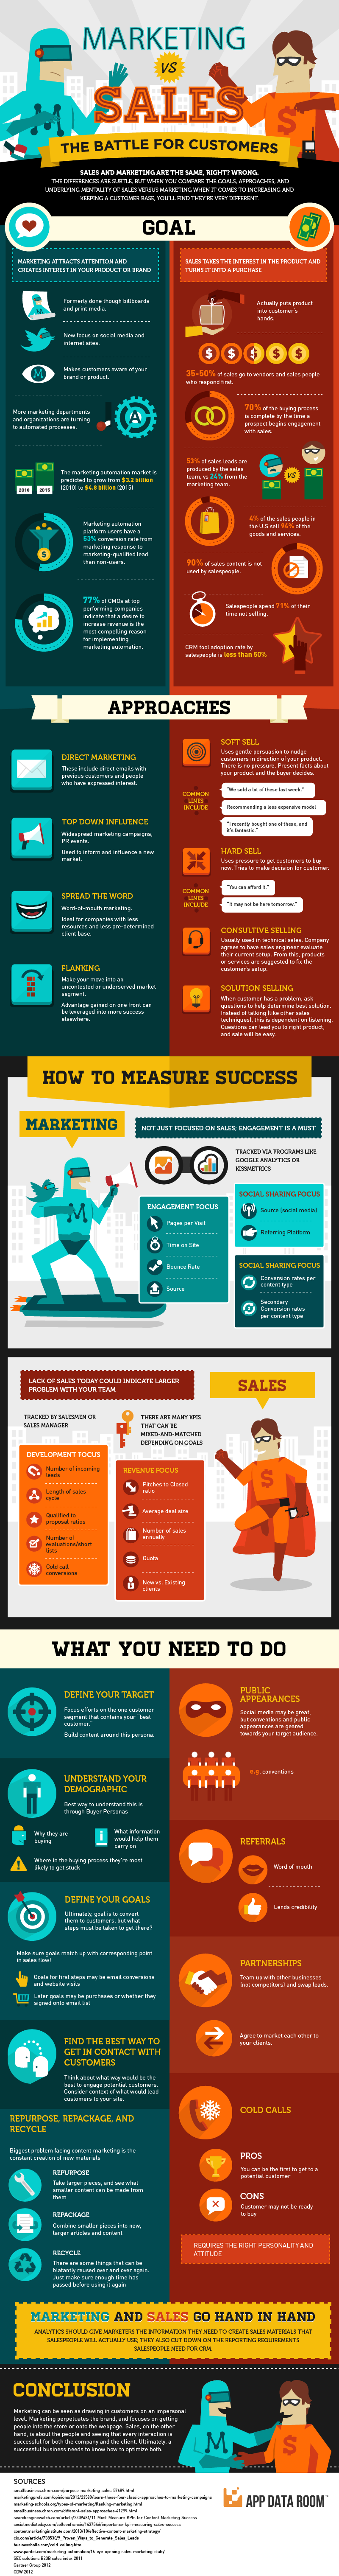 Digital technology is overtaking traditional sources of information like newspapers, radio and television, and social media is now growing as a popular news source. Marketing vs Sales: The Battle for Customers [Infographic ...